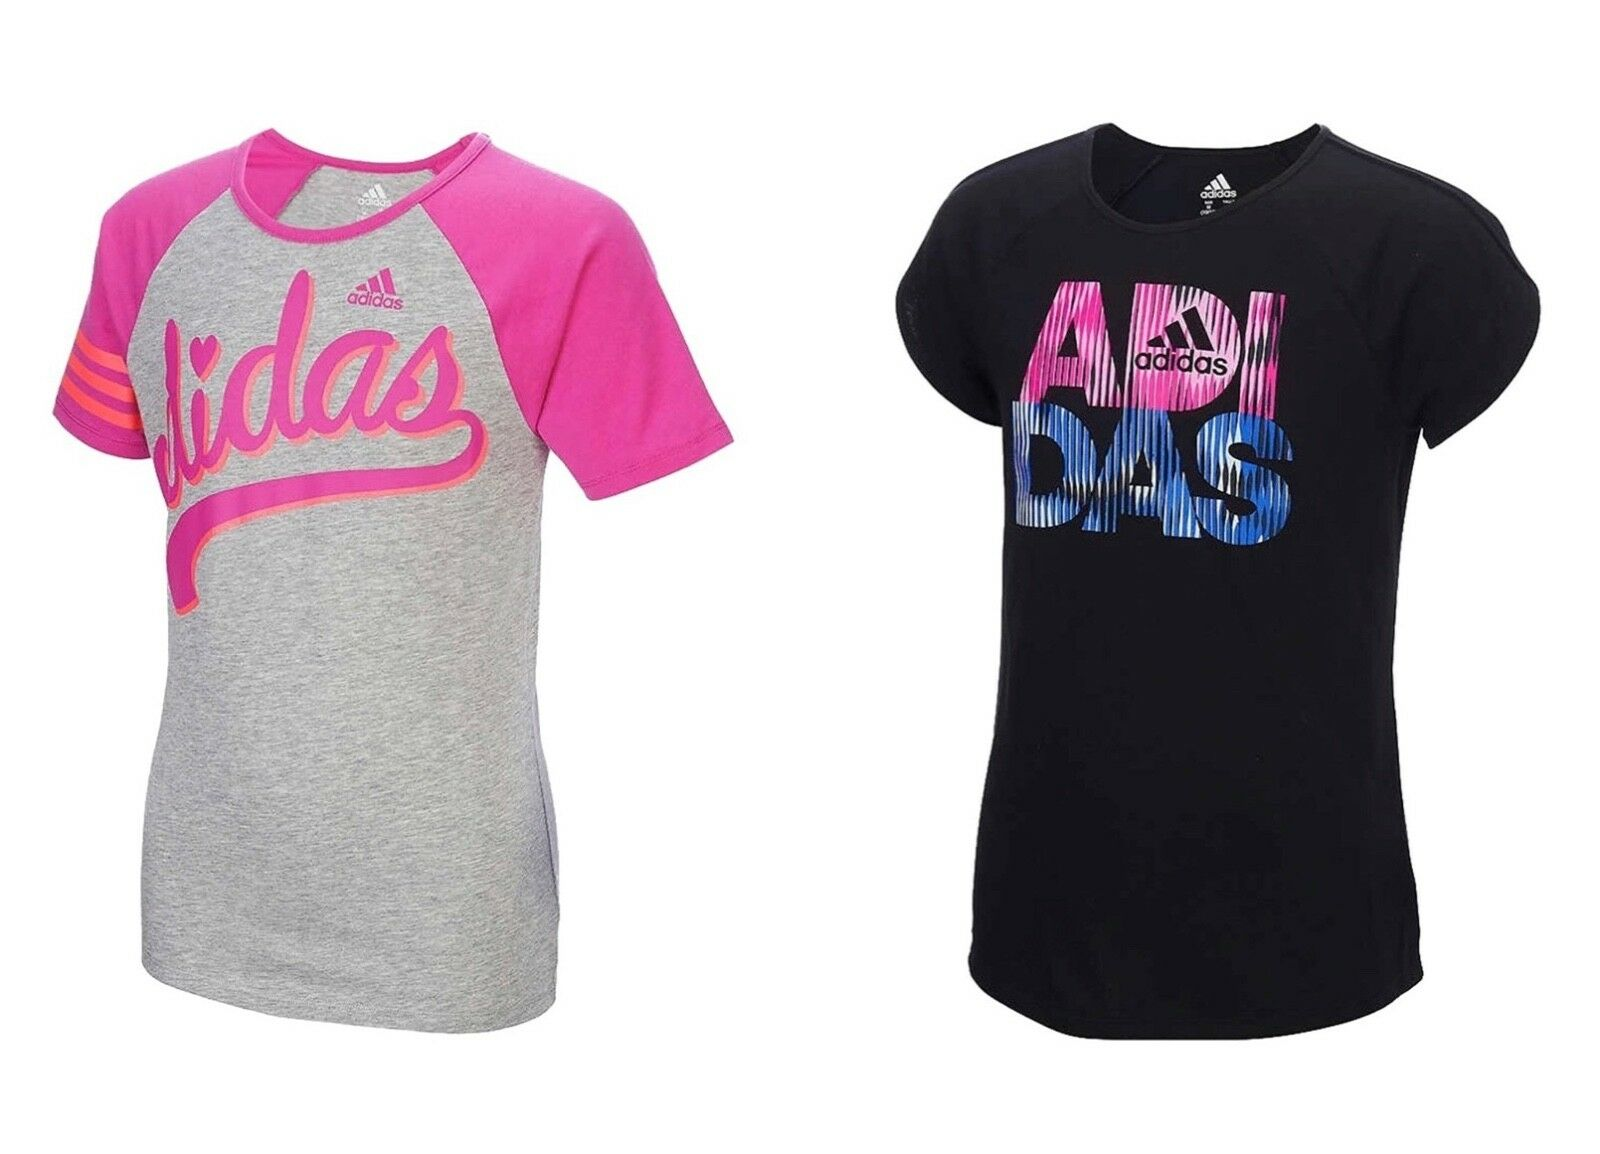 Adidas Girls' Active Short Sleeve T-Shirt - Select size/colo